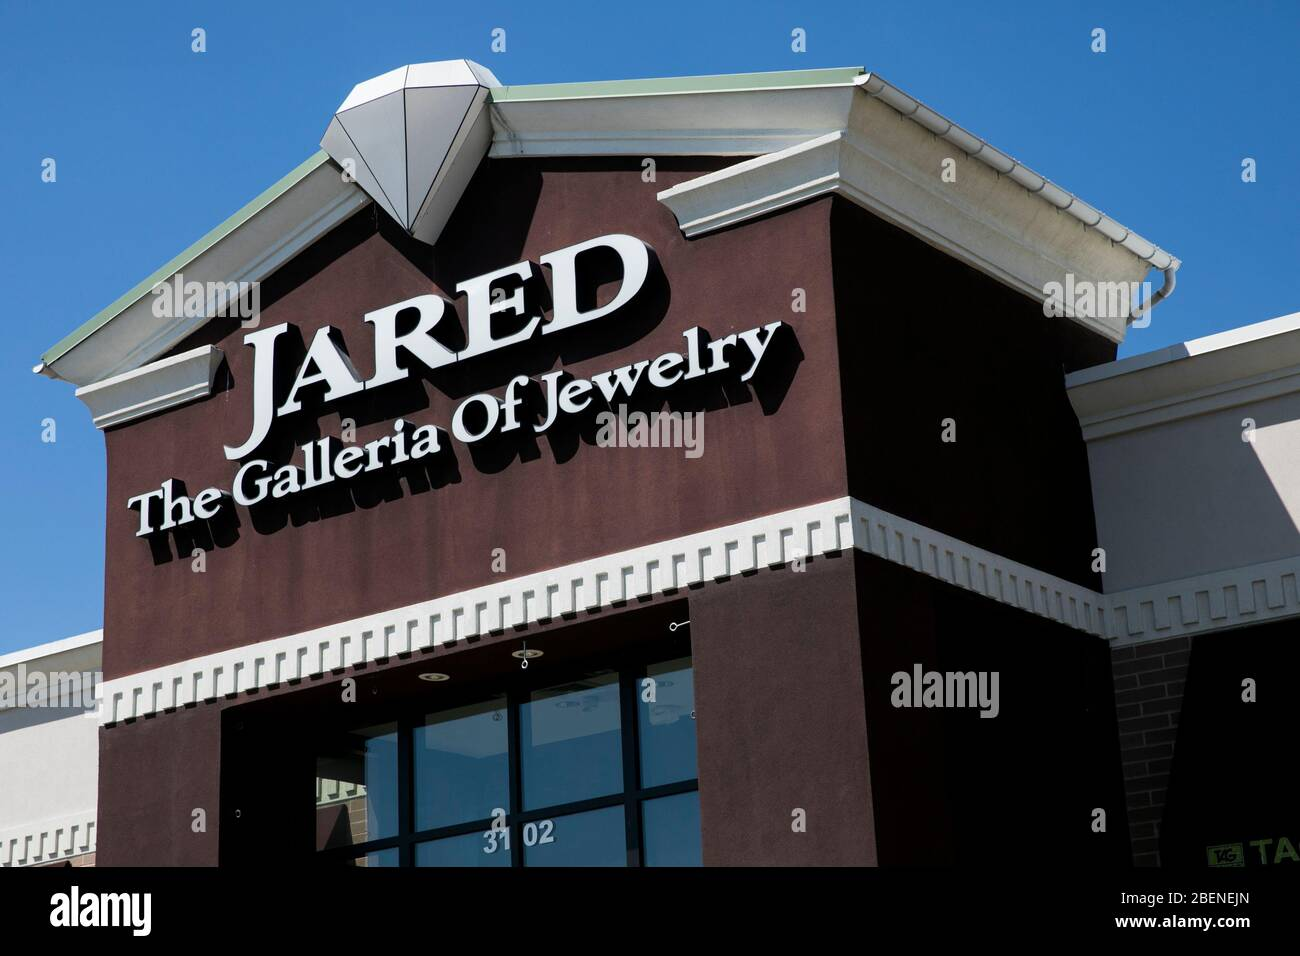 A logo sign outside of a Jared The Galleria Of Jewelry ...